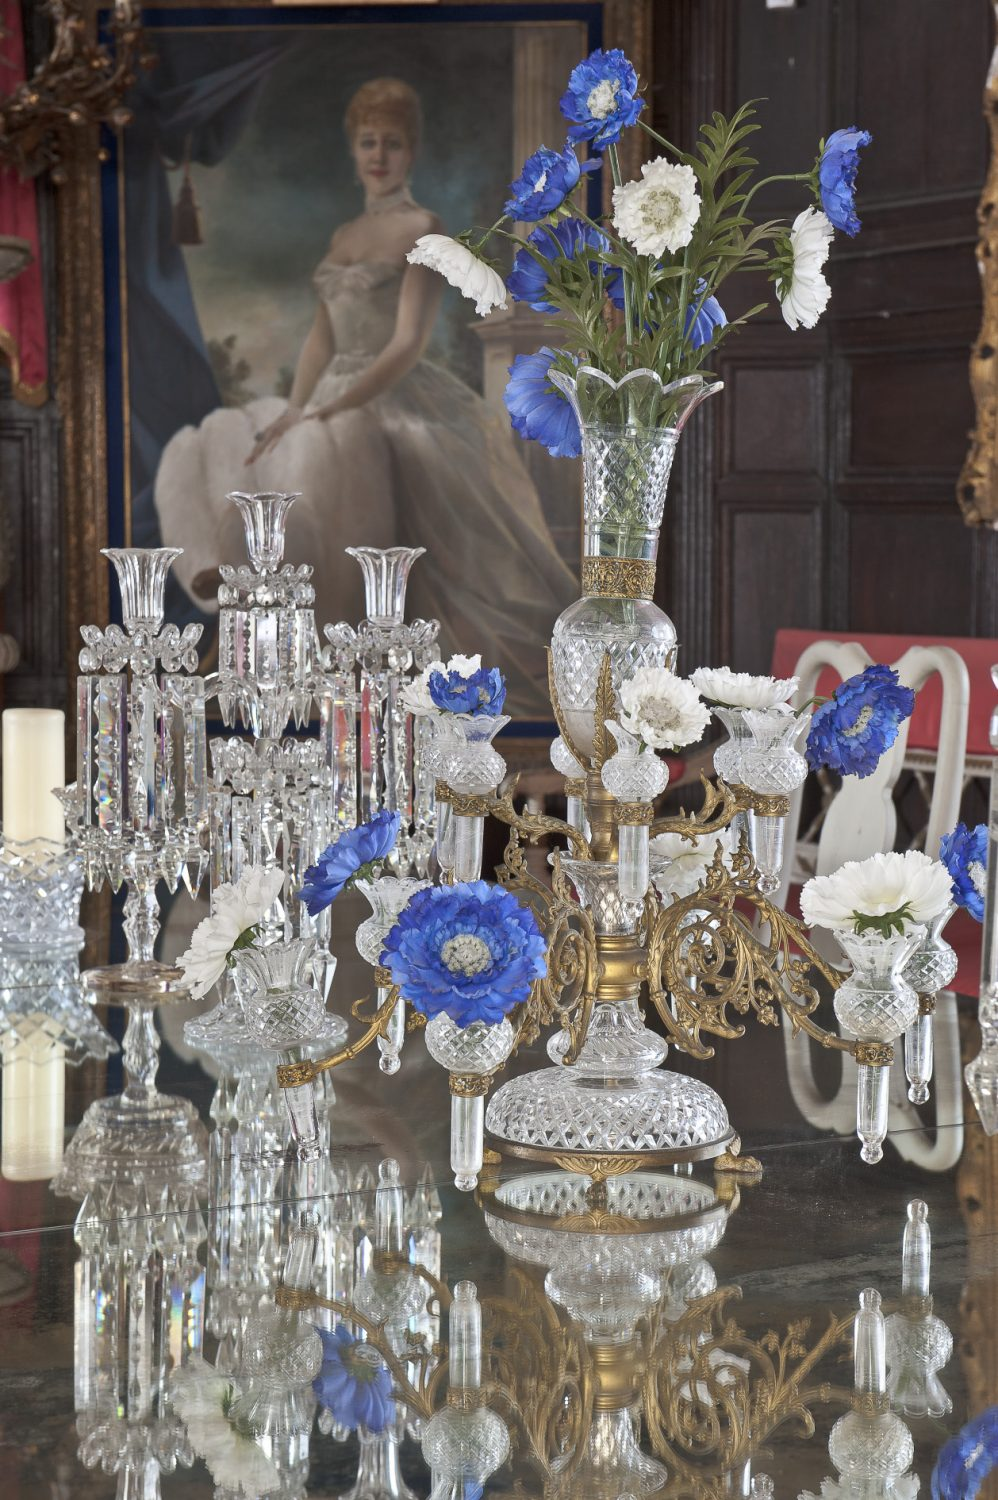 The mirrored table top in the Oak Room produces a wonderful effect when the candelabra are lit and the epergne filled with flowers